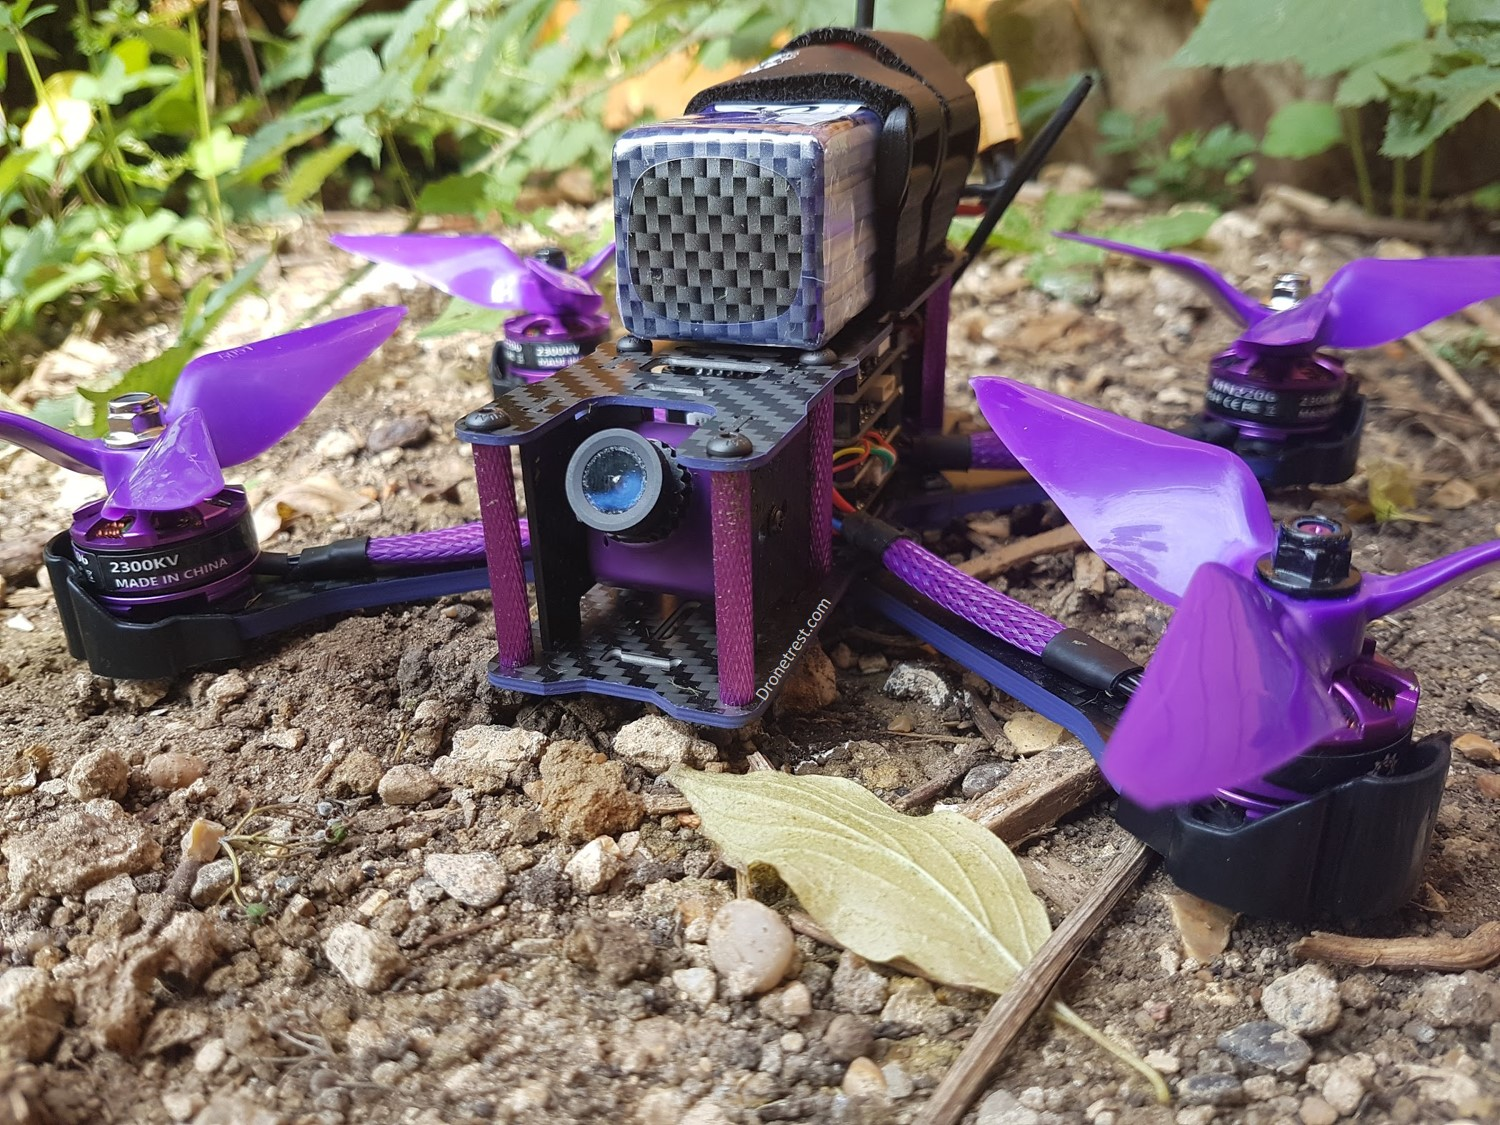 Eachine Wizard X220S Review – King of the Budget RTF Freestyle Quads?